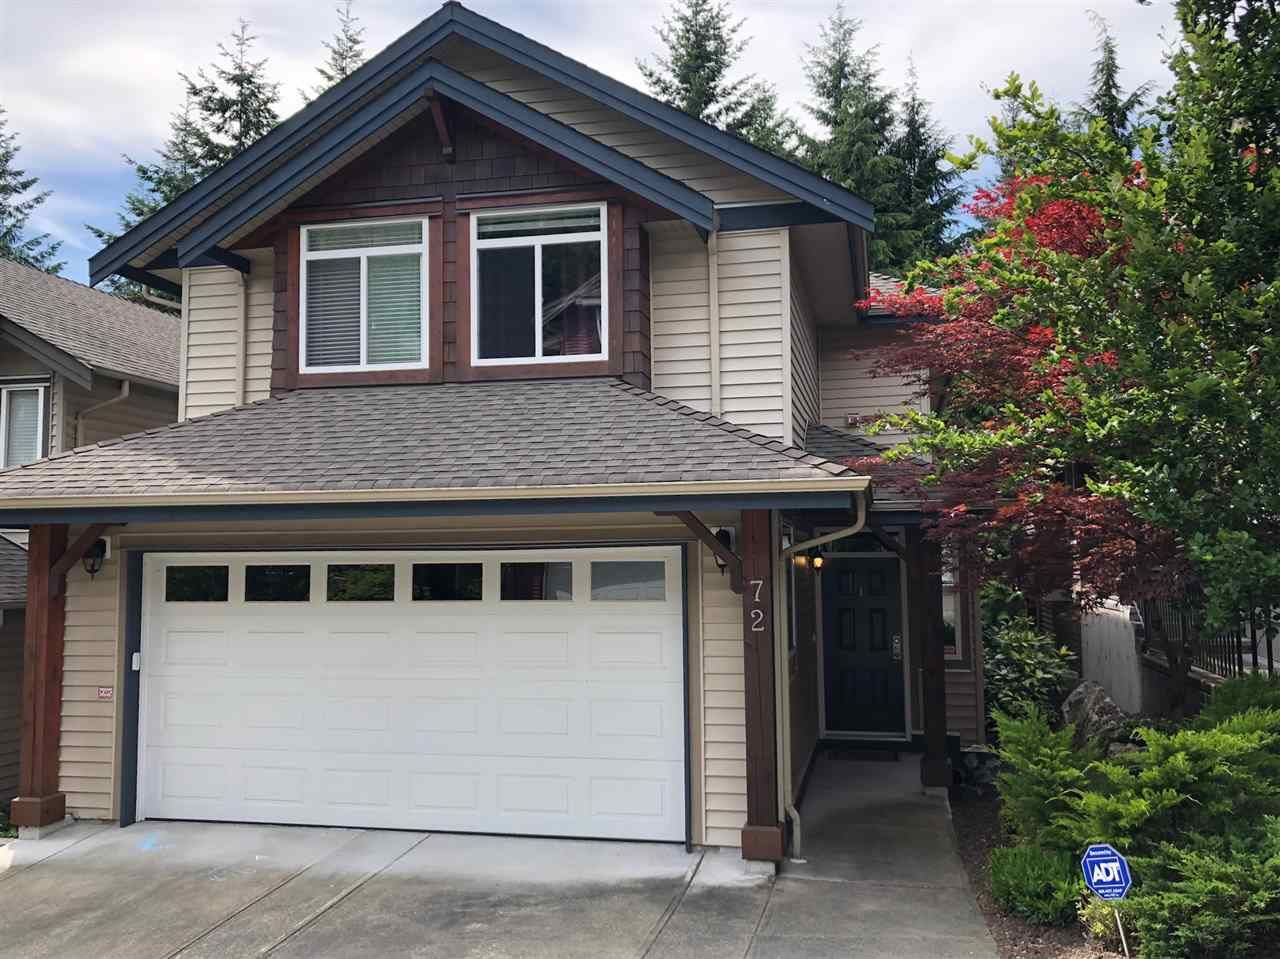 """Main Photo: 72 1701 PARKWAY Boulevard in Coquitlam: Westwood Plateau House for sale in """"Tango"""" : MLS®# R2380225"""